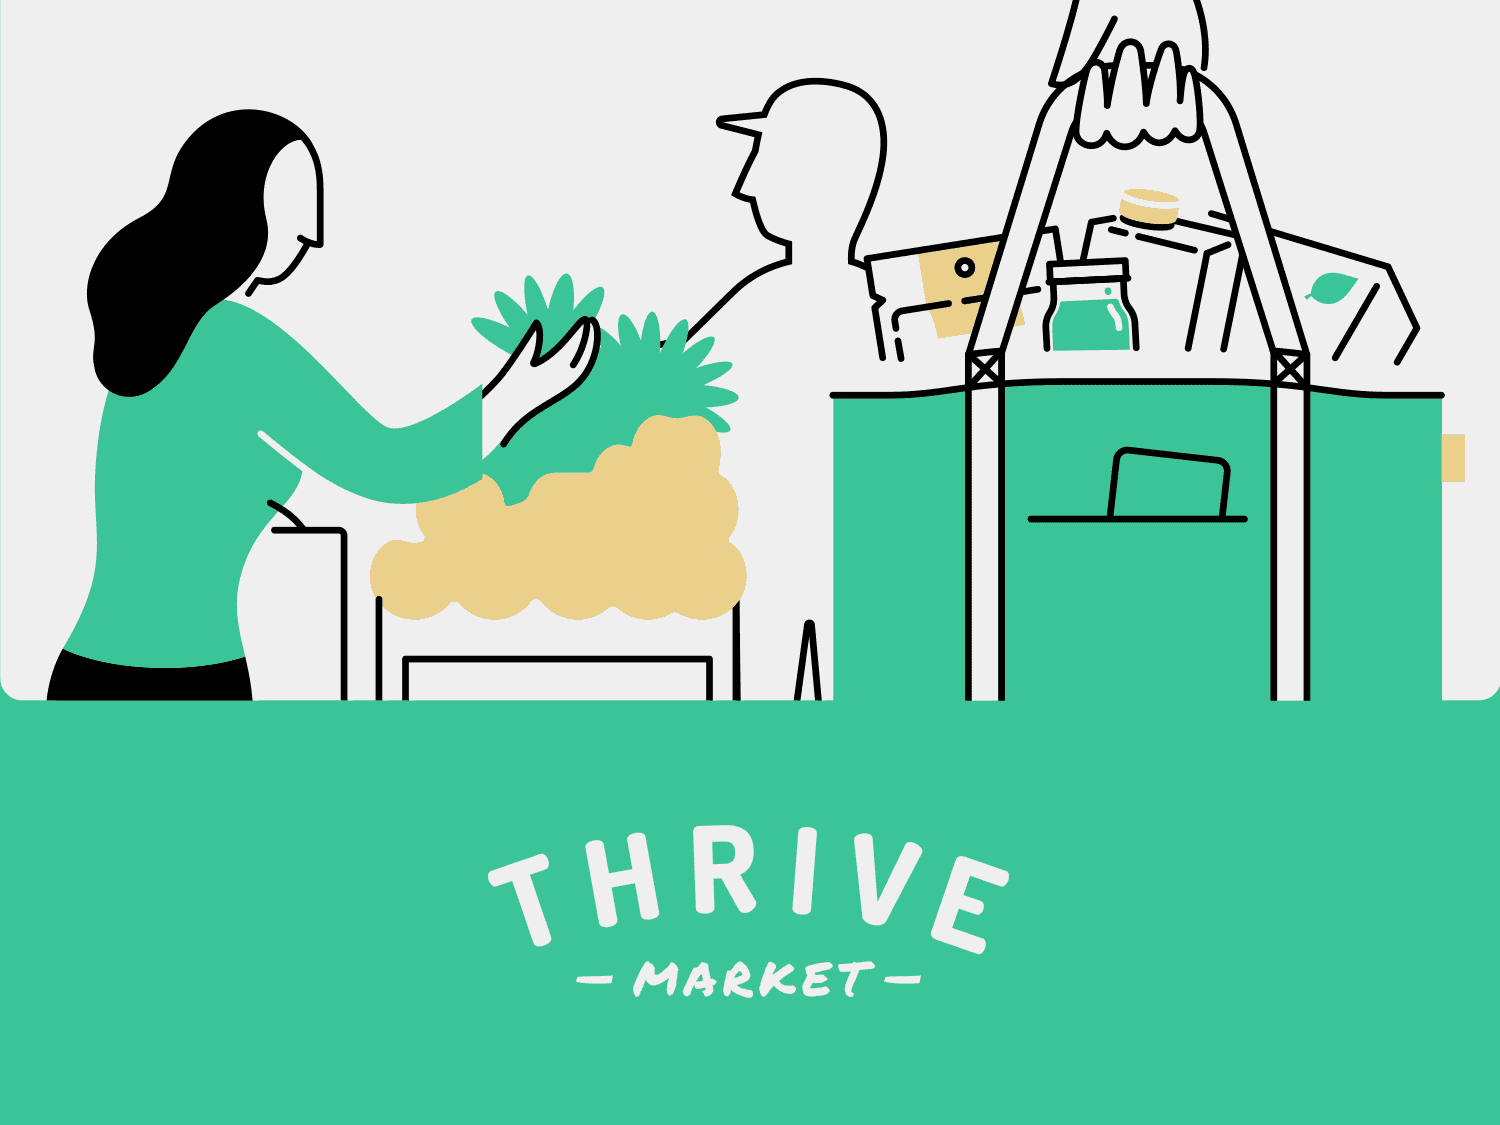 Thrive Market Illustrations